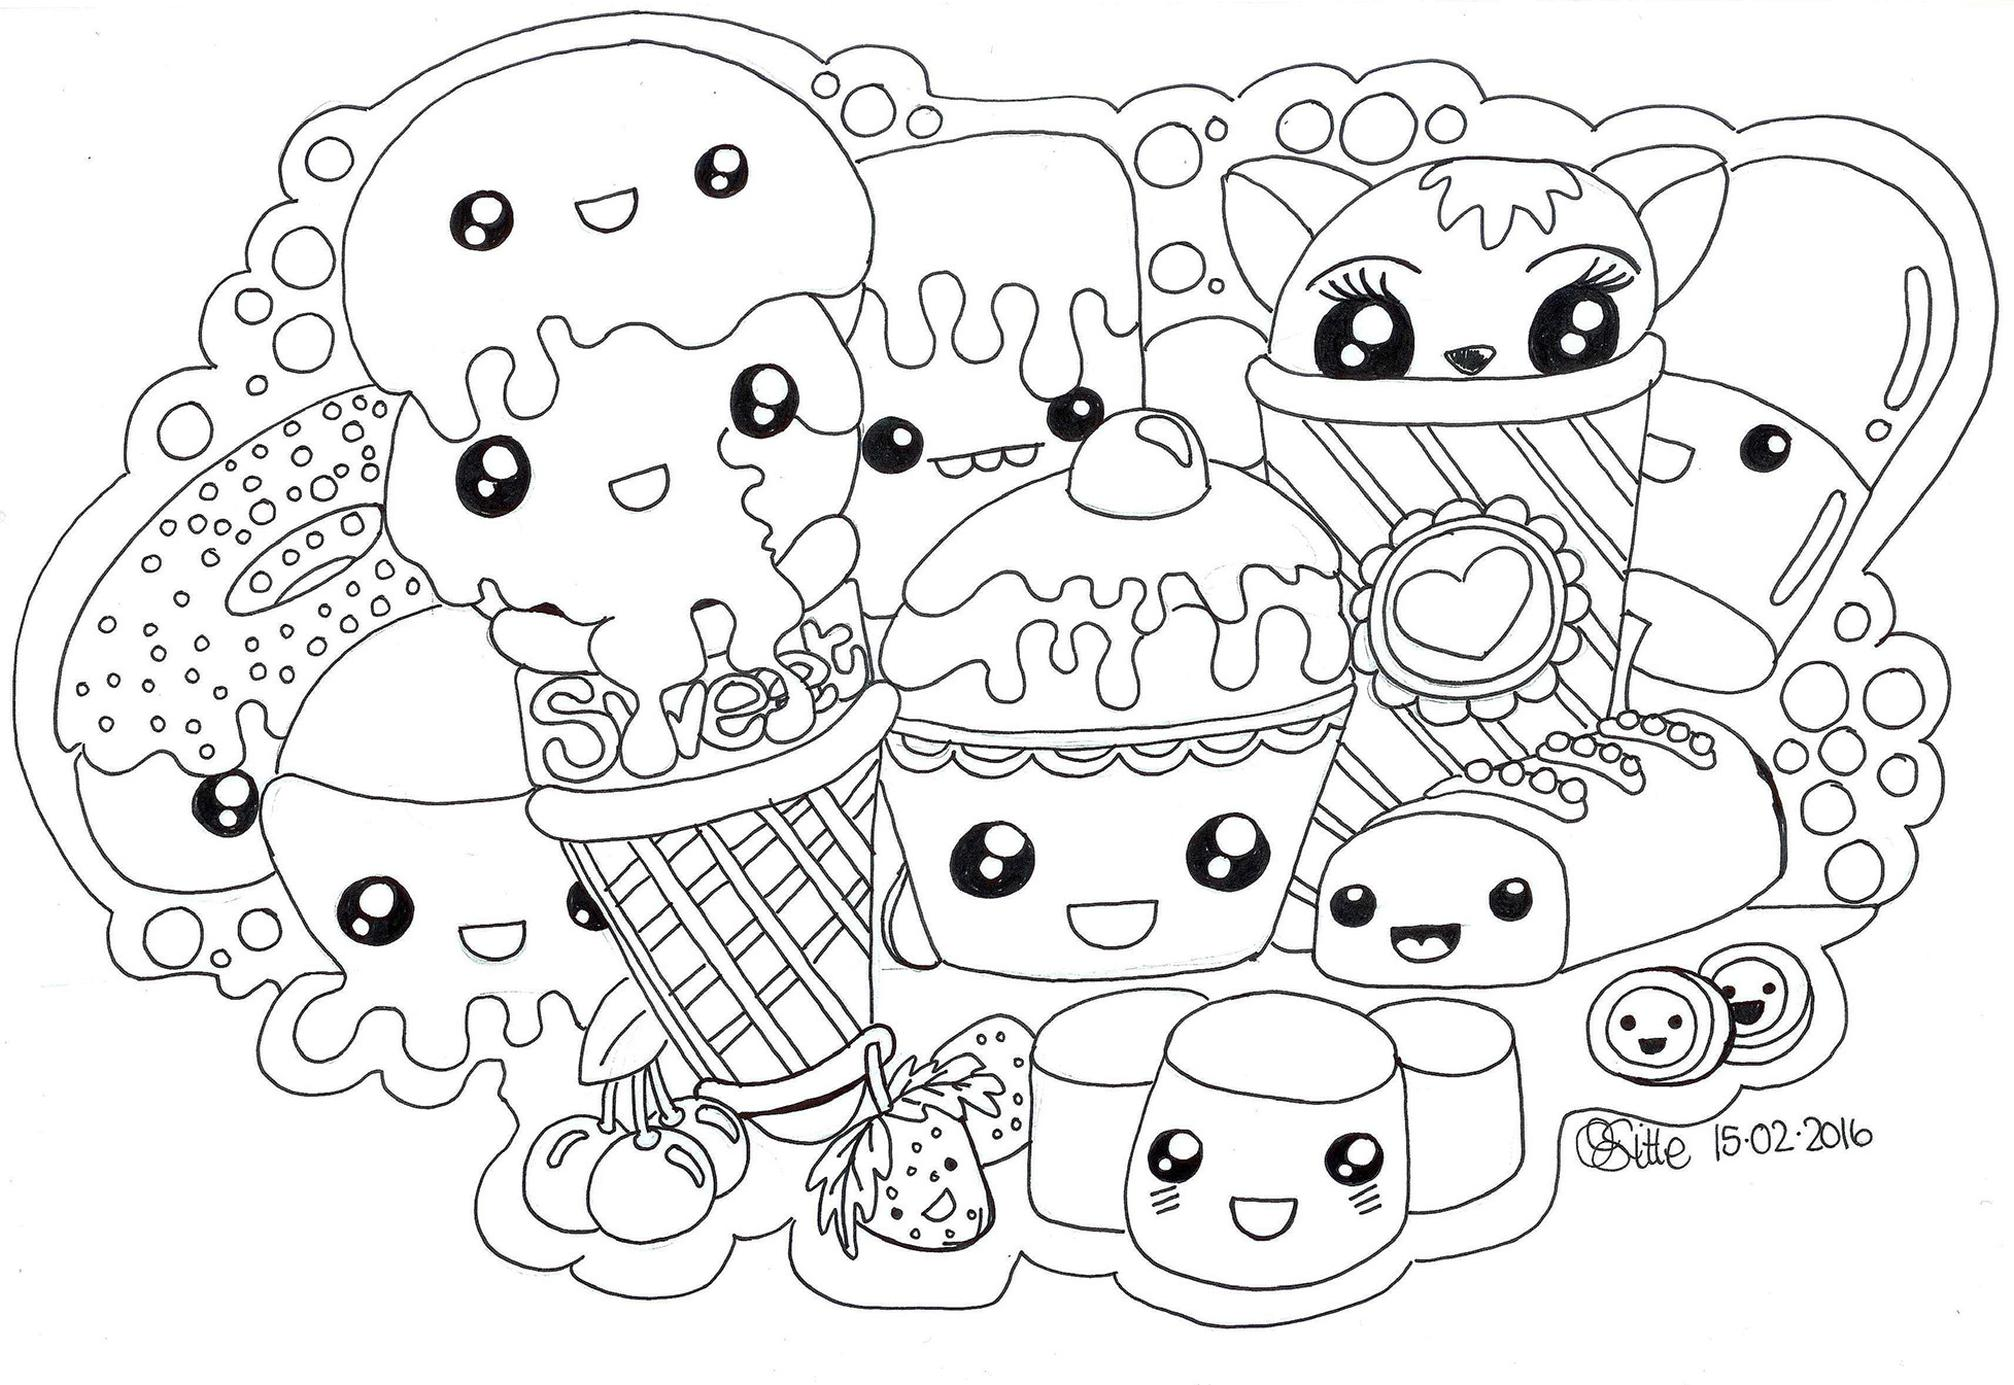 Food Kawaii Coloring Pages Free to Print